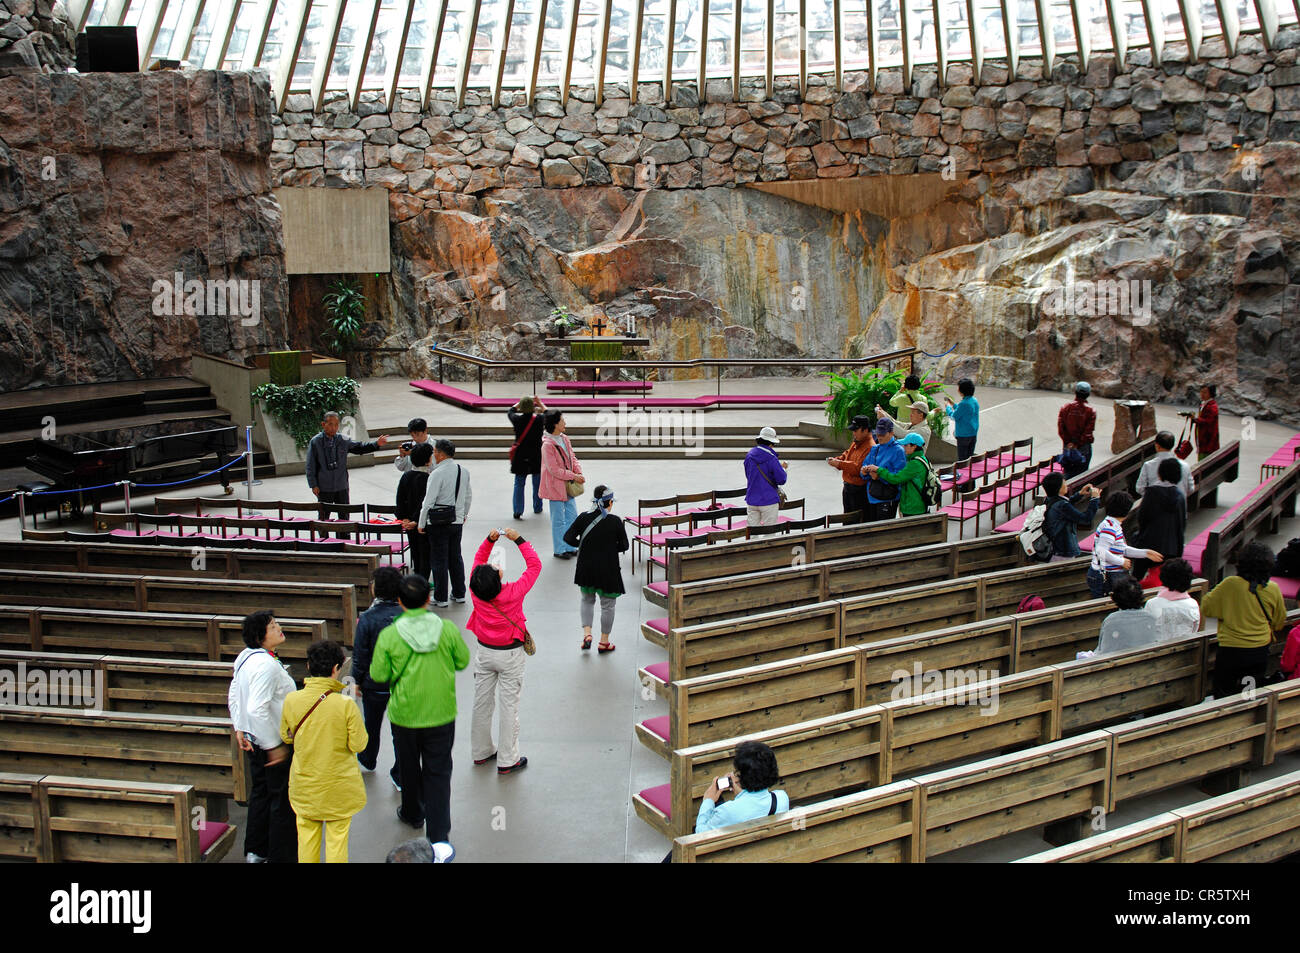 Asian tourists in the sanctuary of the Temppeliaukio Church in Helsinki, Finland, Europe Stock Photo